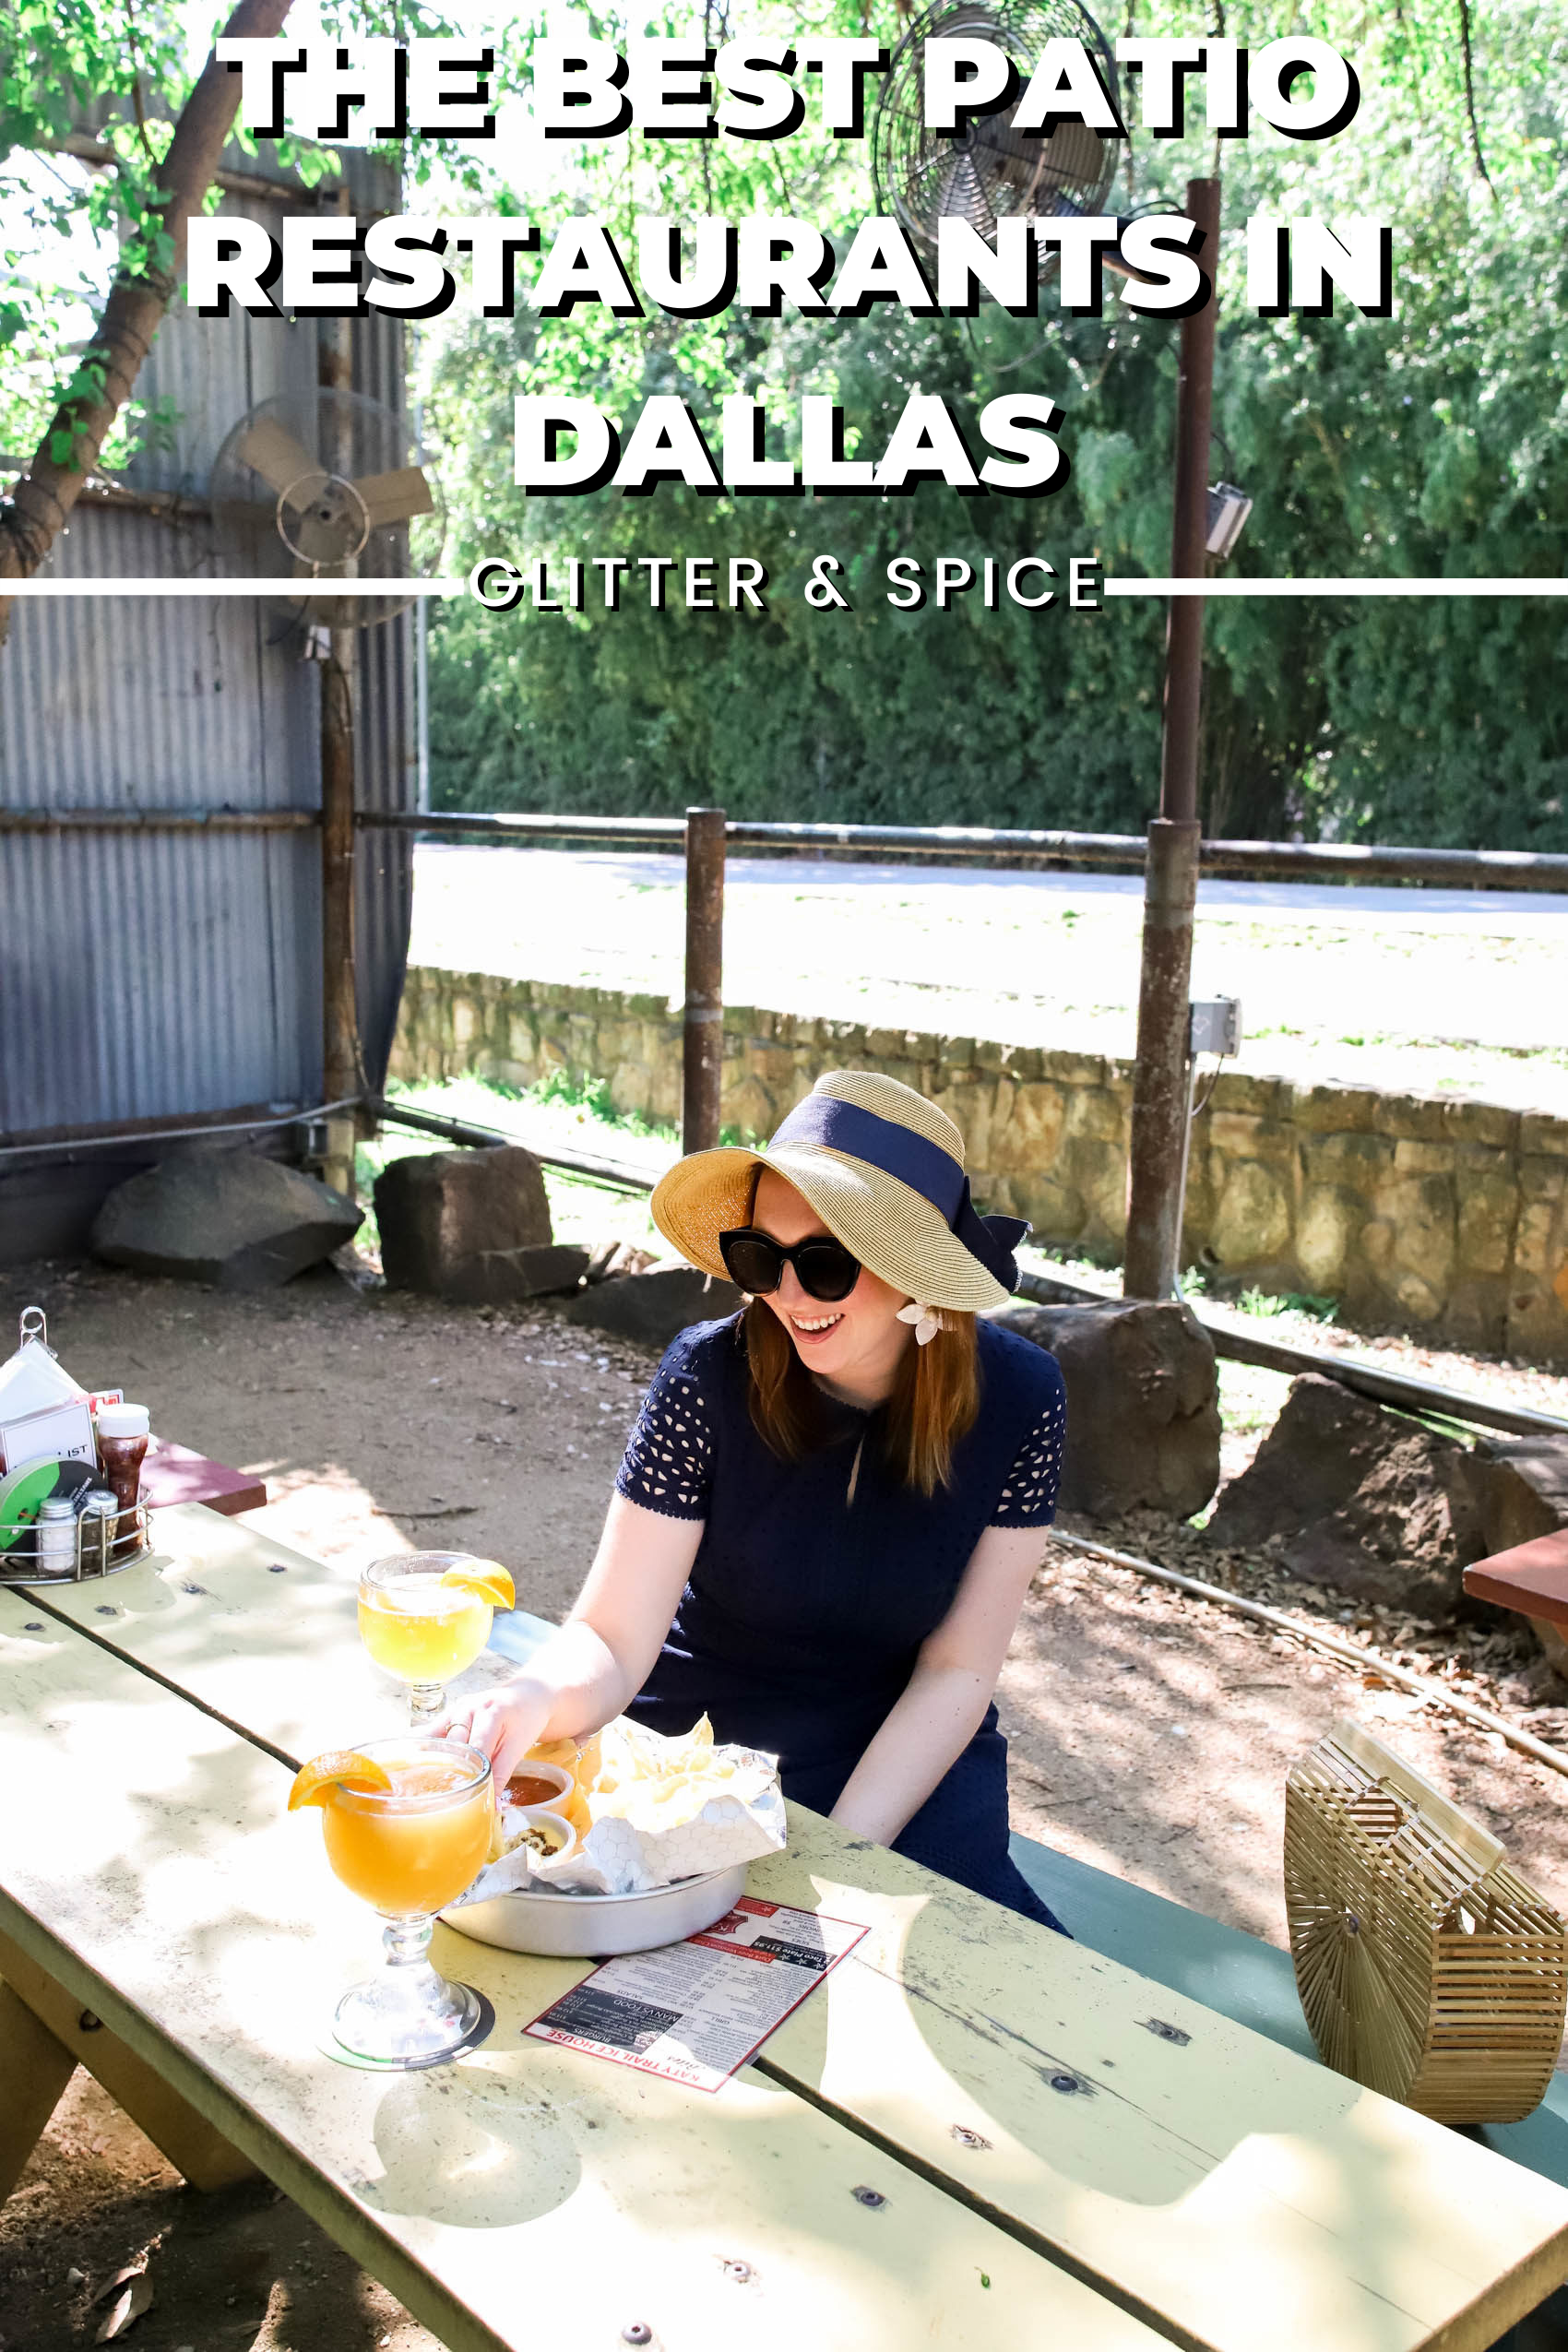 The Best Patio Restaurants in Dallas graphic for Pinterest